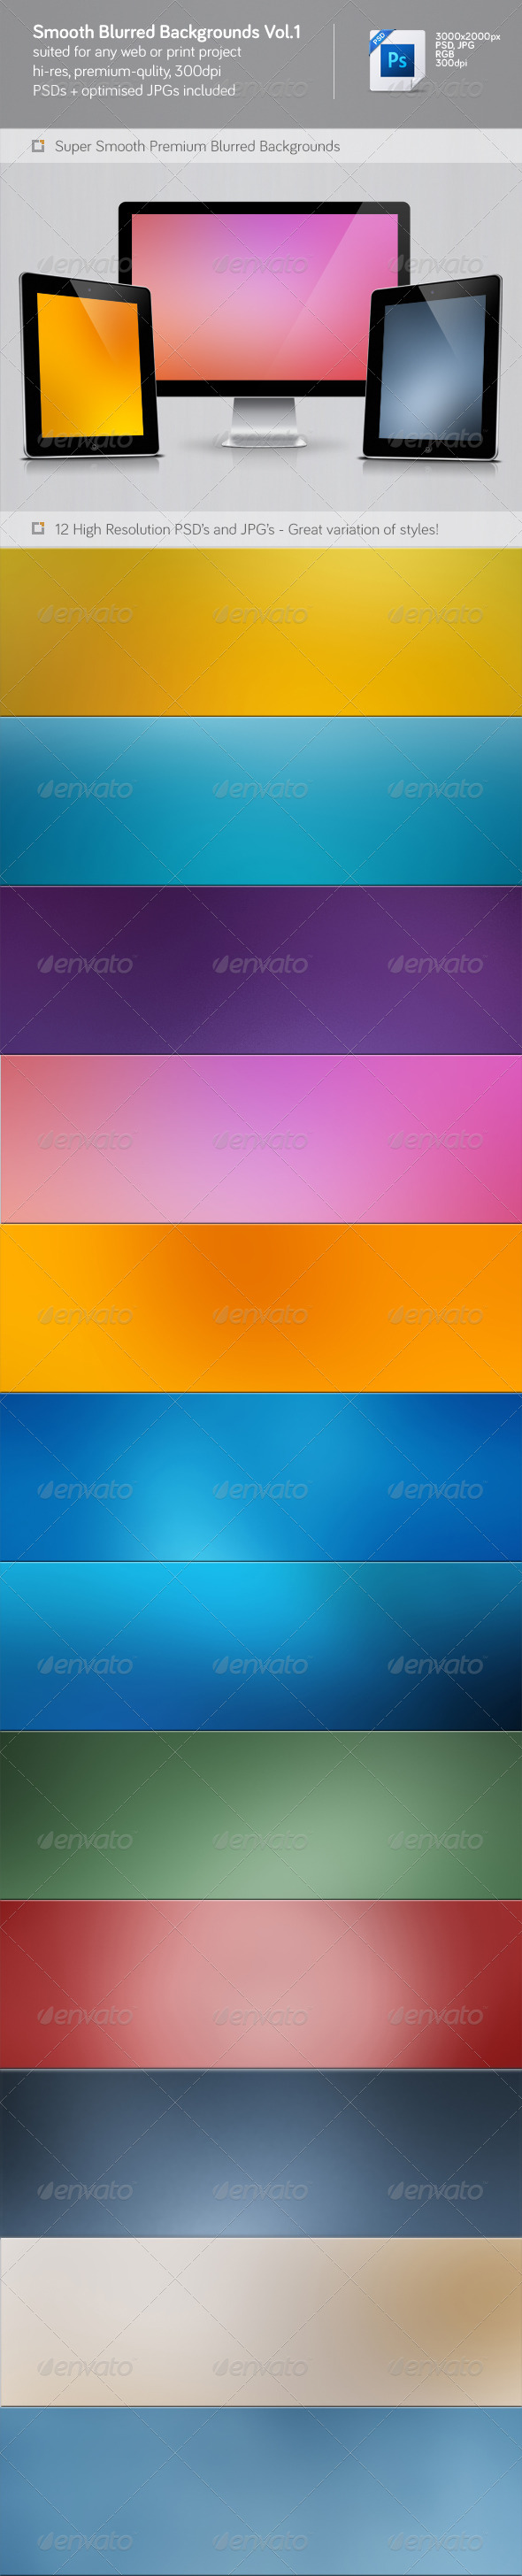 Smooth Blurred Backgrounds Vol.1 - Abstract Backgrounds